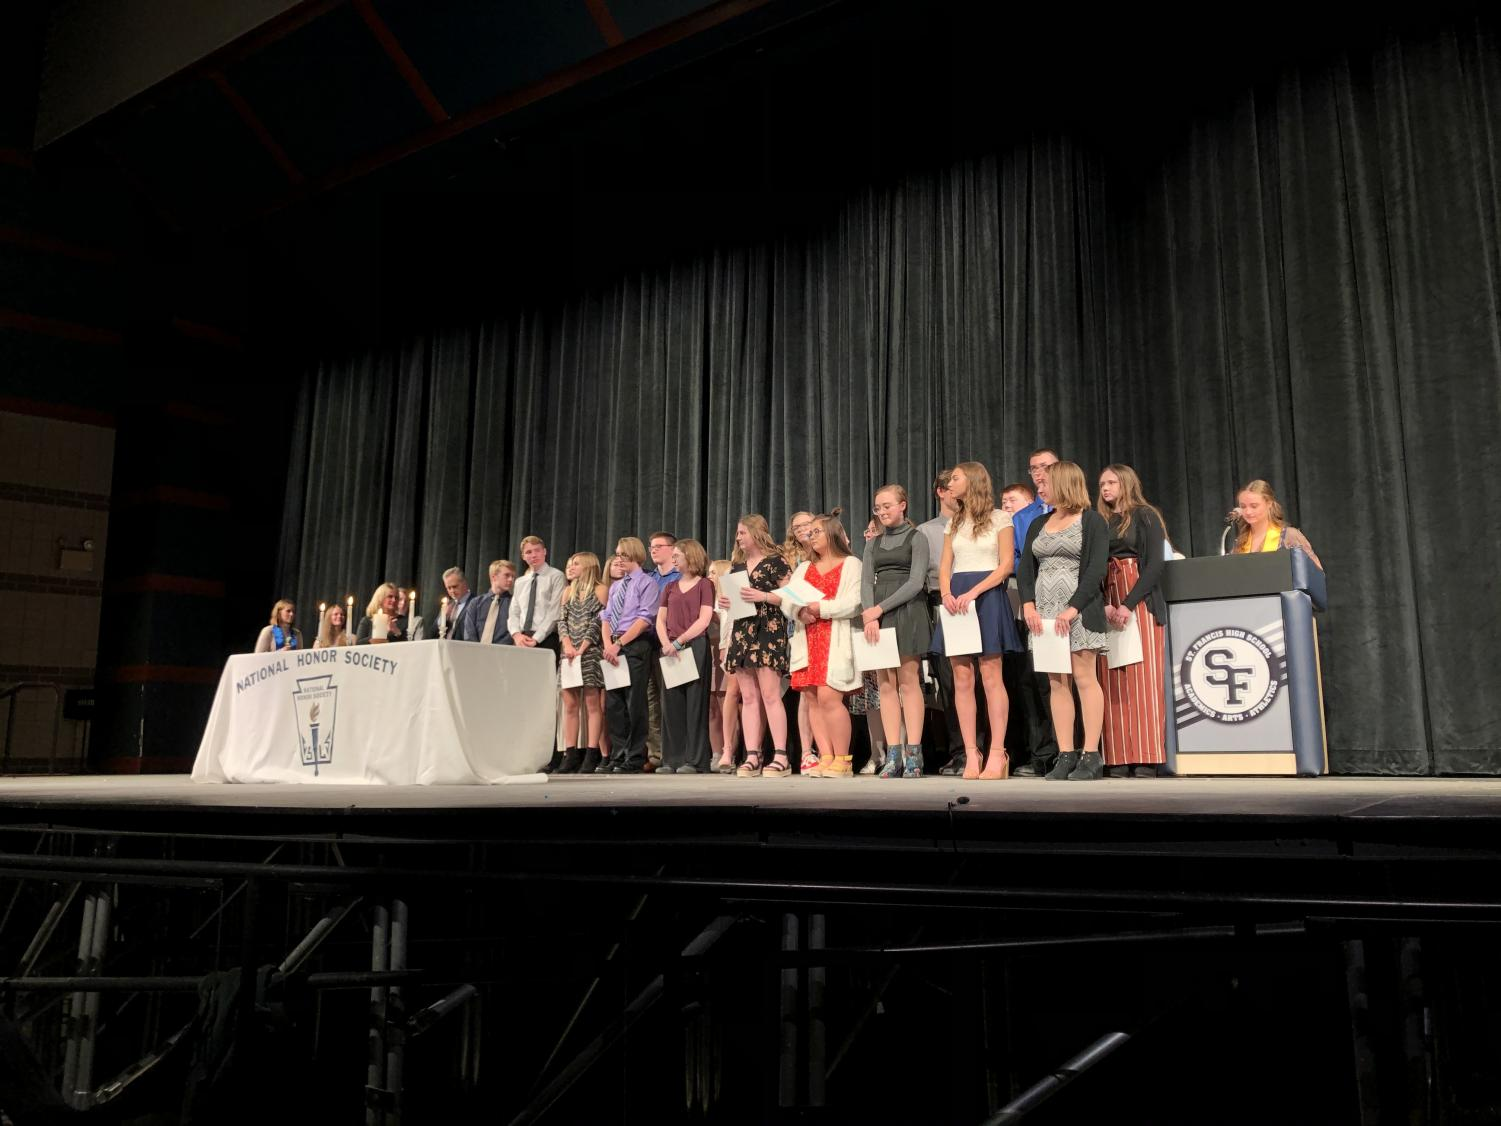 NHS inducted new students on Wednesday, October 30 in the Performing Arts Center.